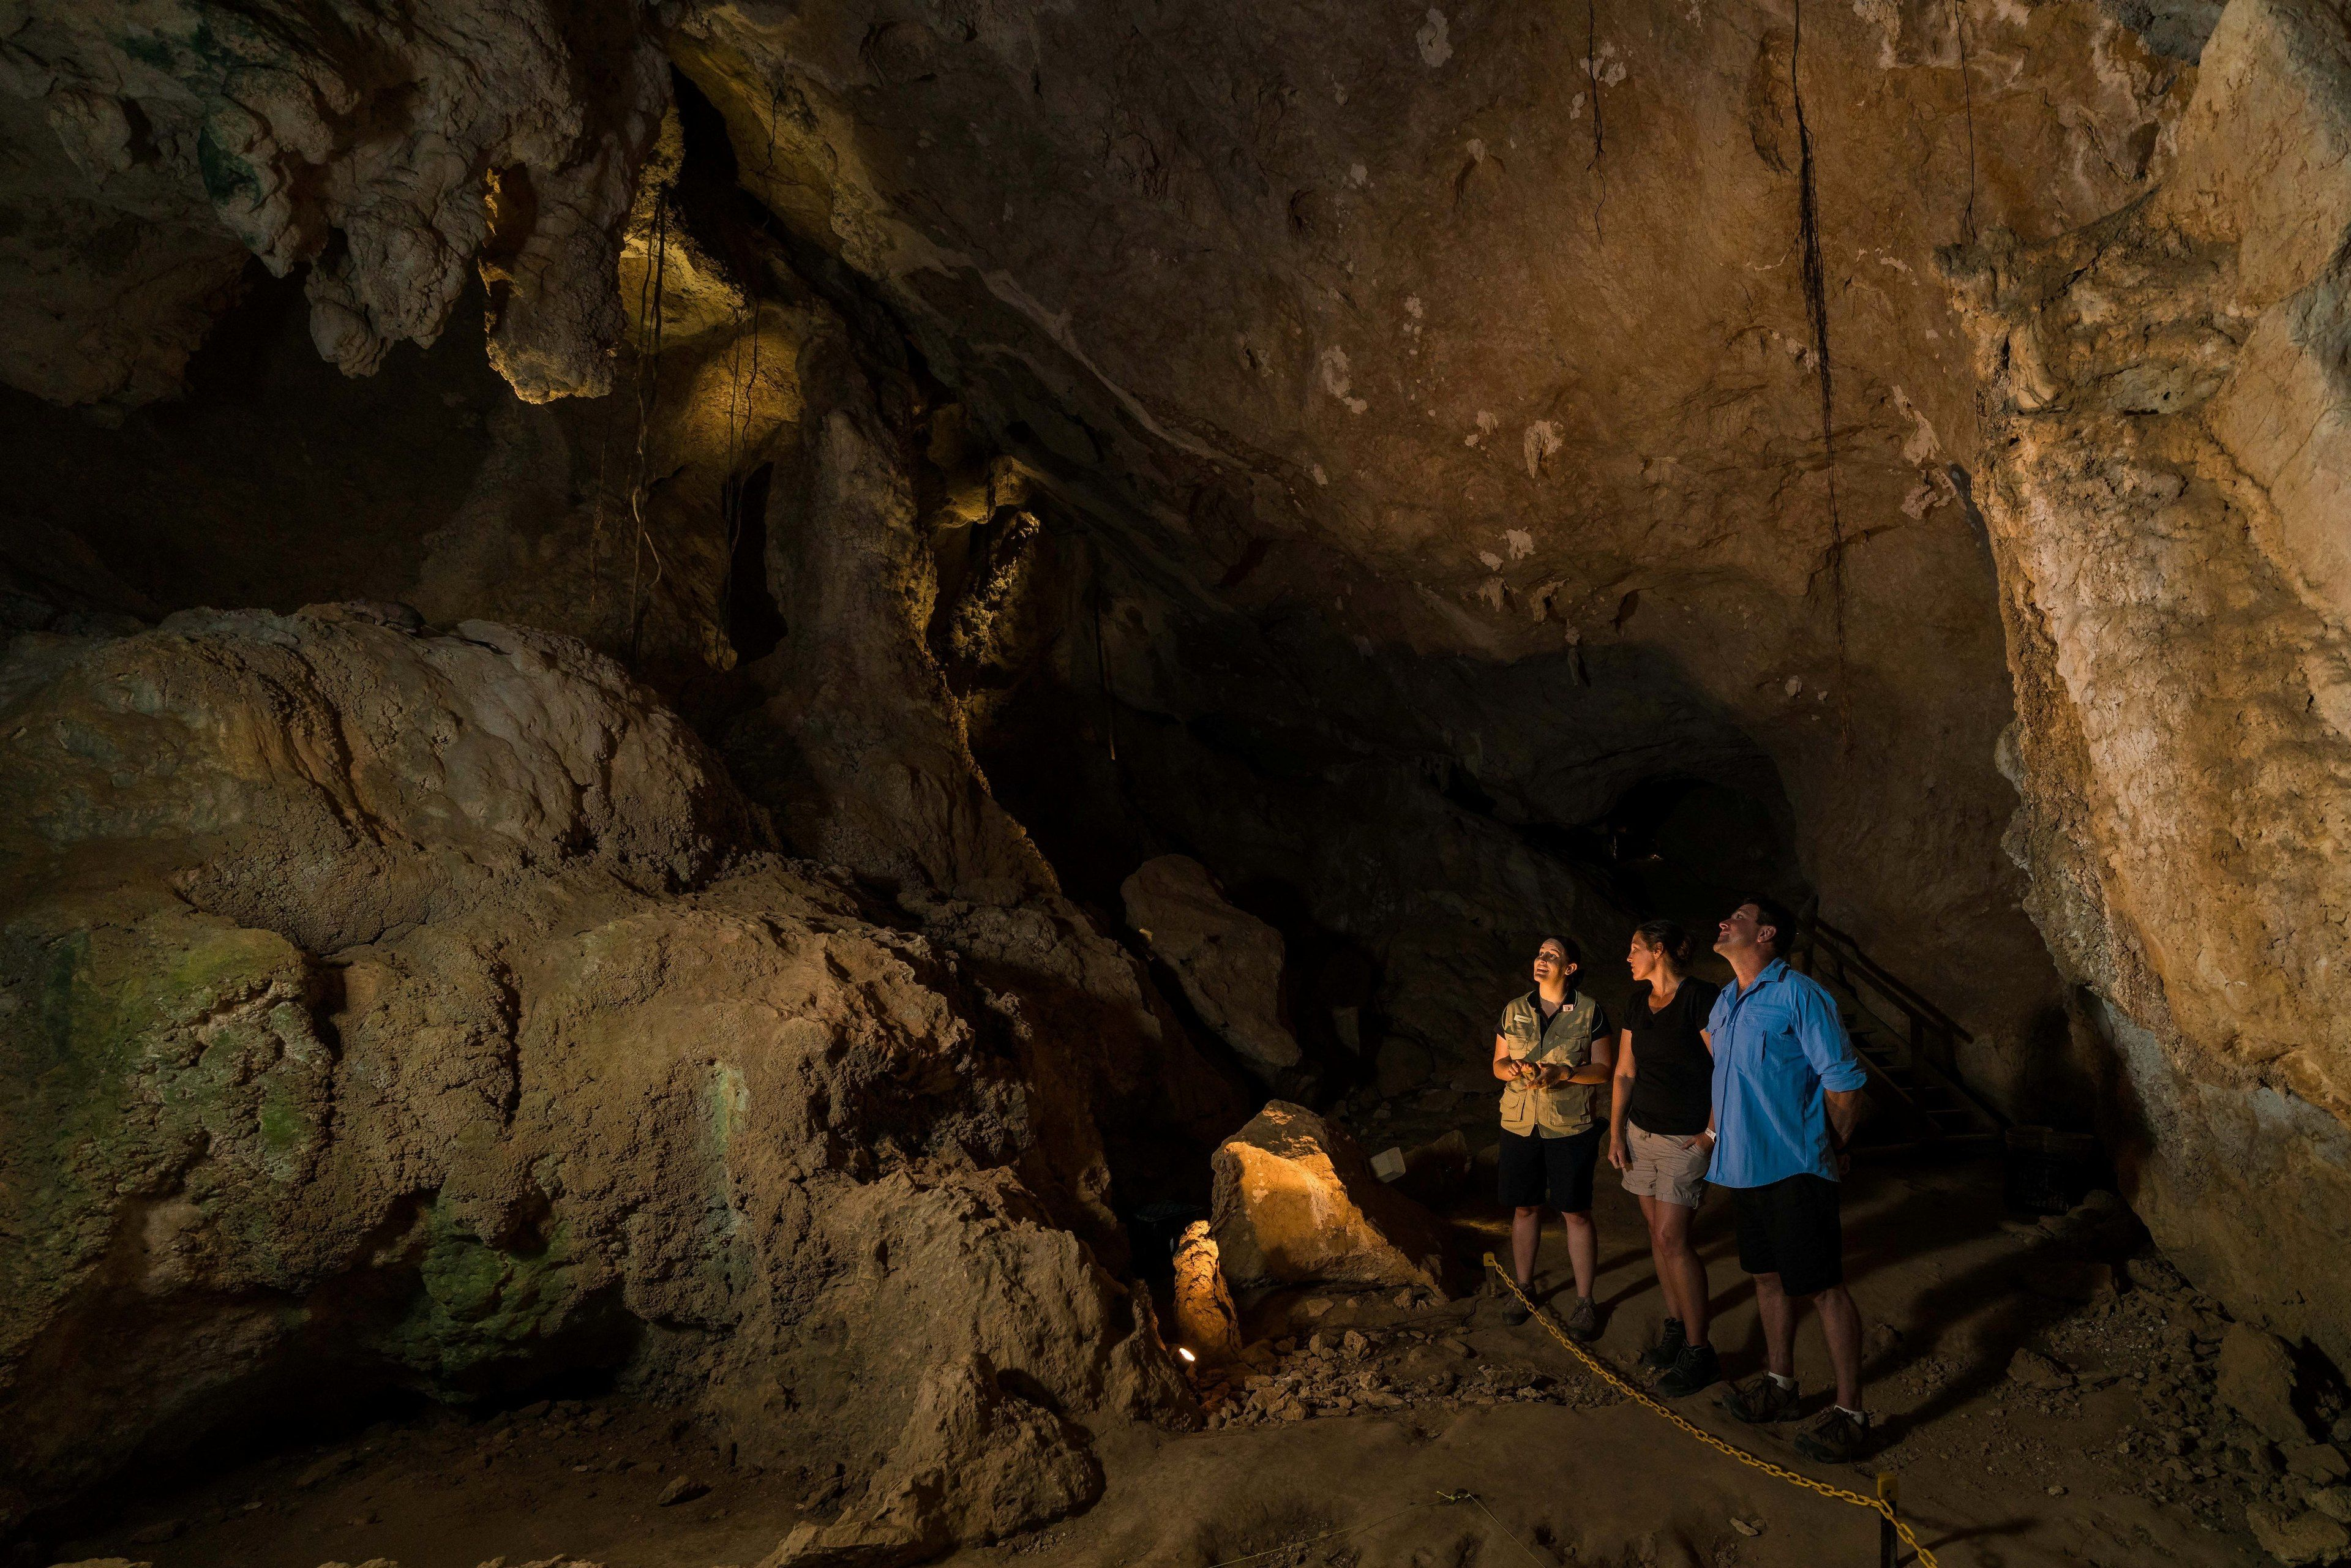 Group inside Capricorn Caves in Australia